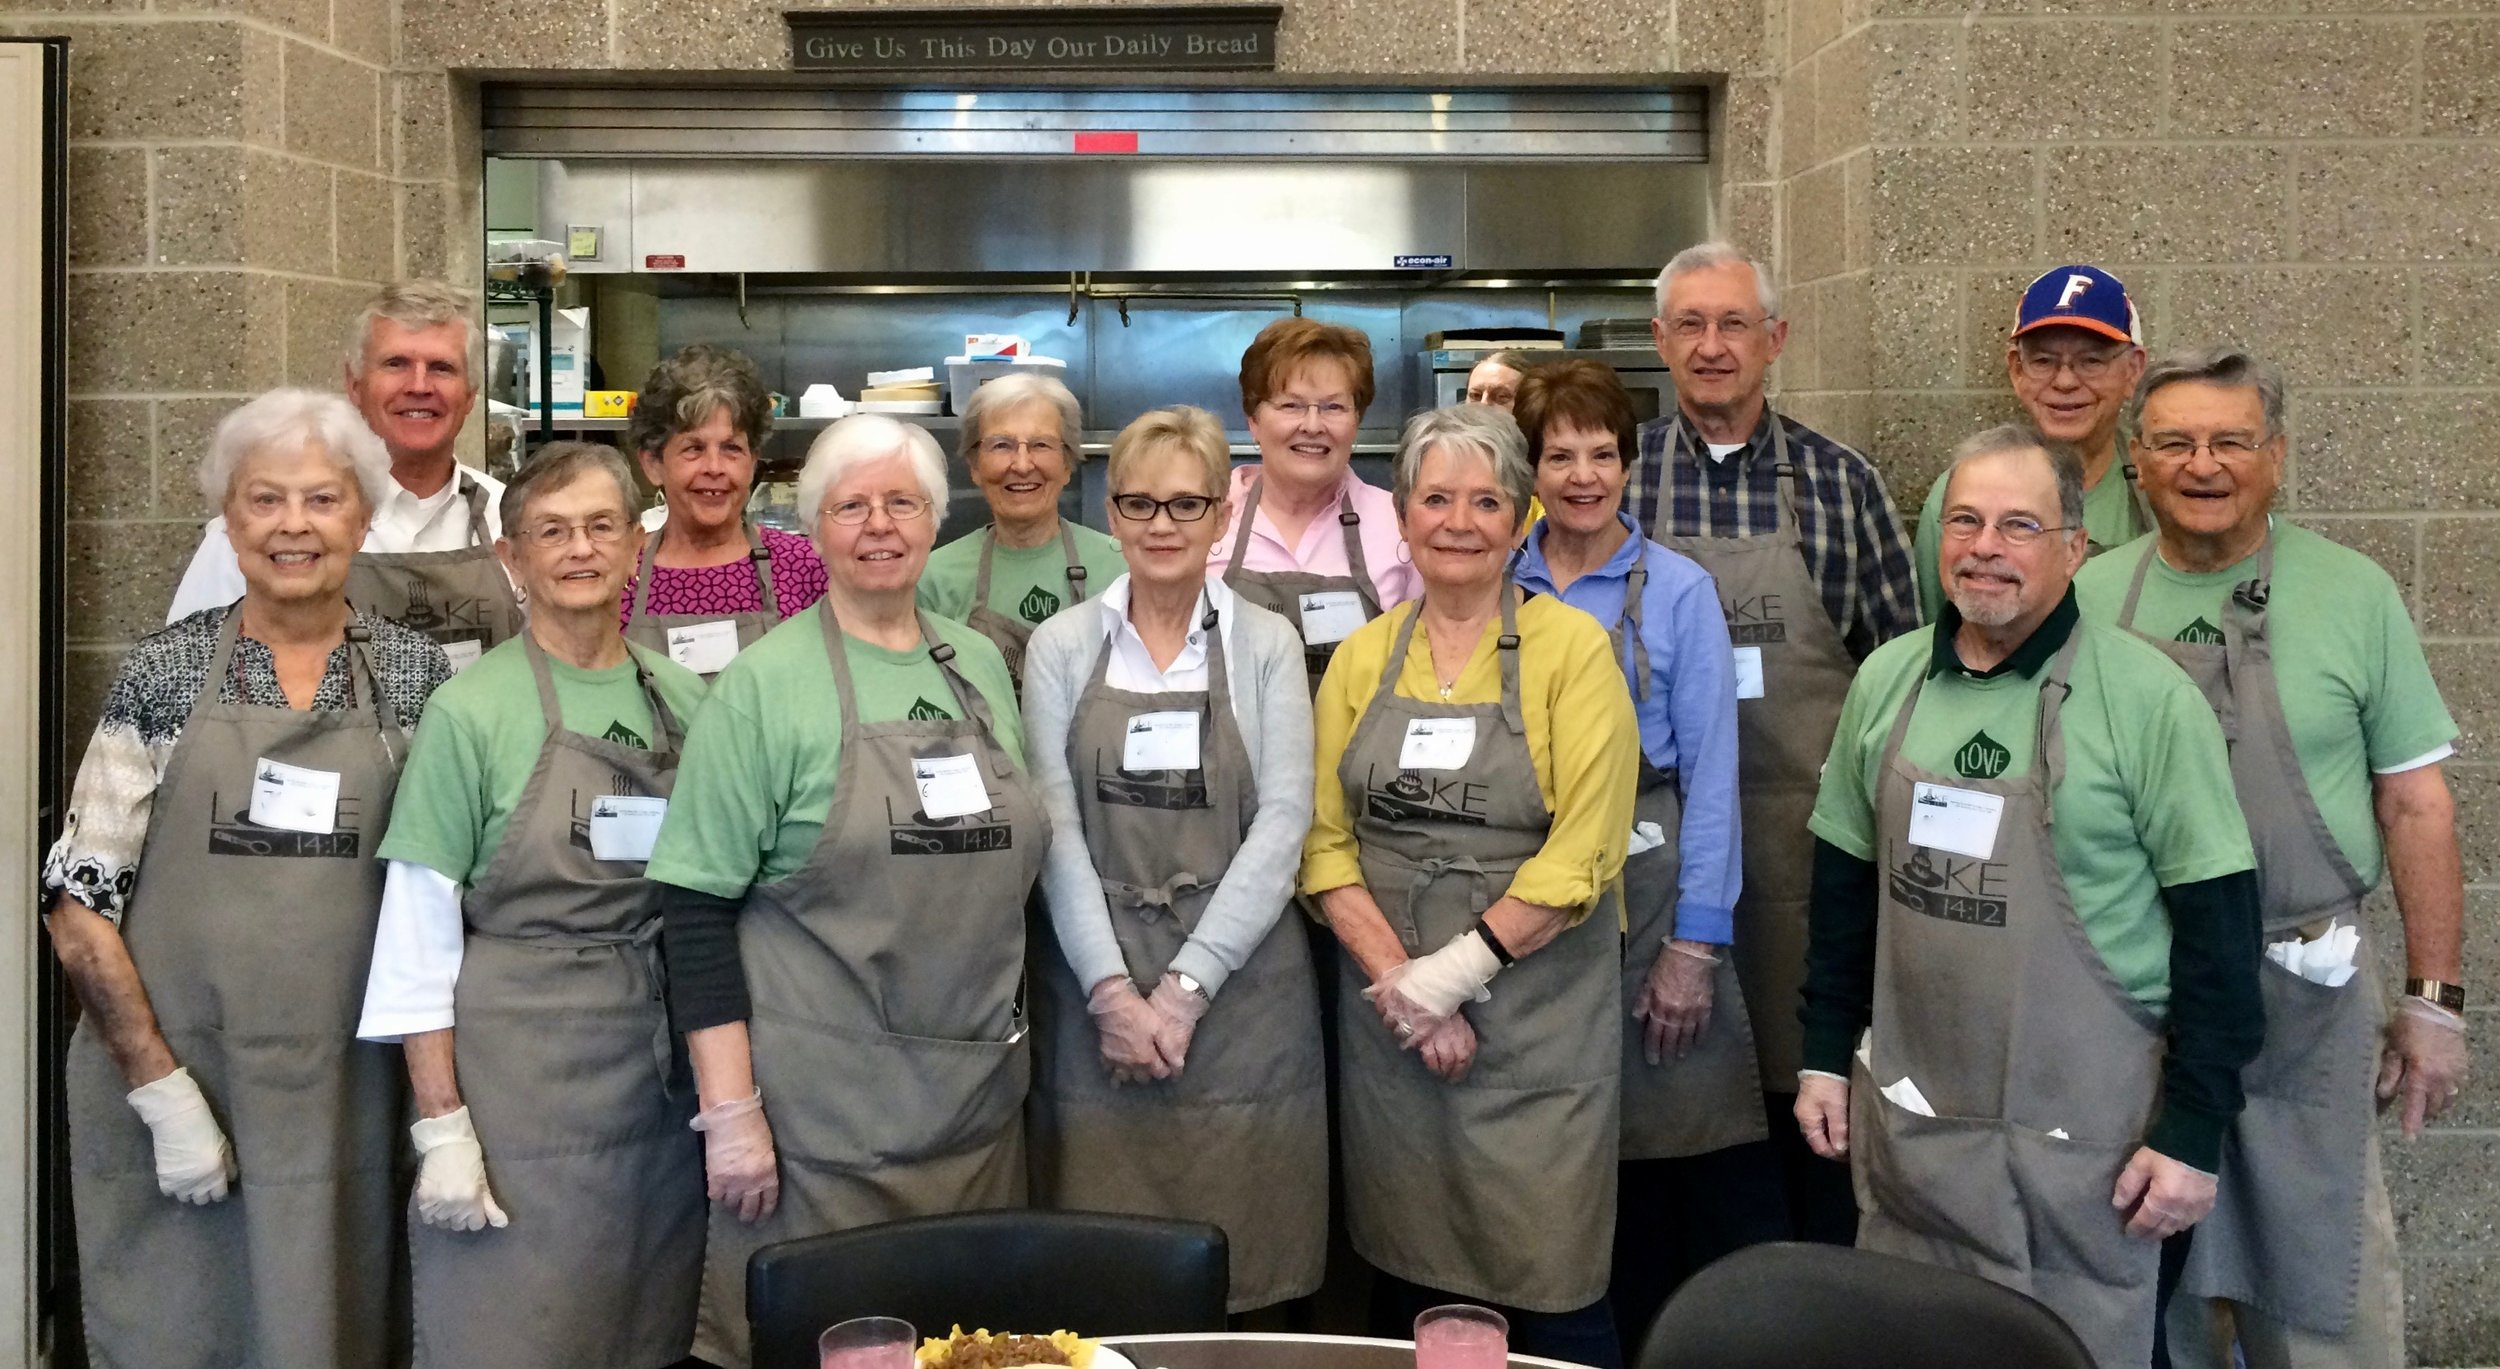 Volunteers from Immanuel serve lunch to our homeless neighbors at Luke 14:12 on the fourth Tuesday of each month.